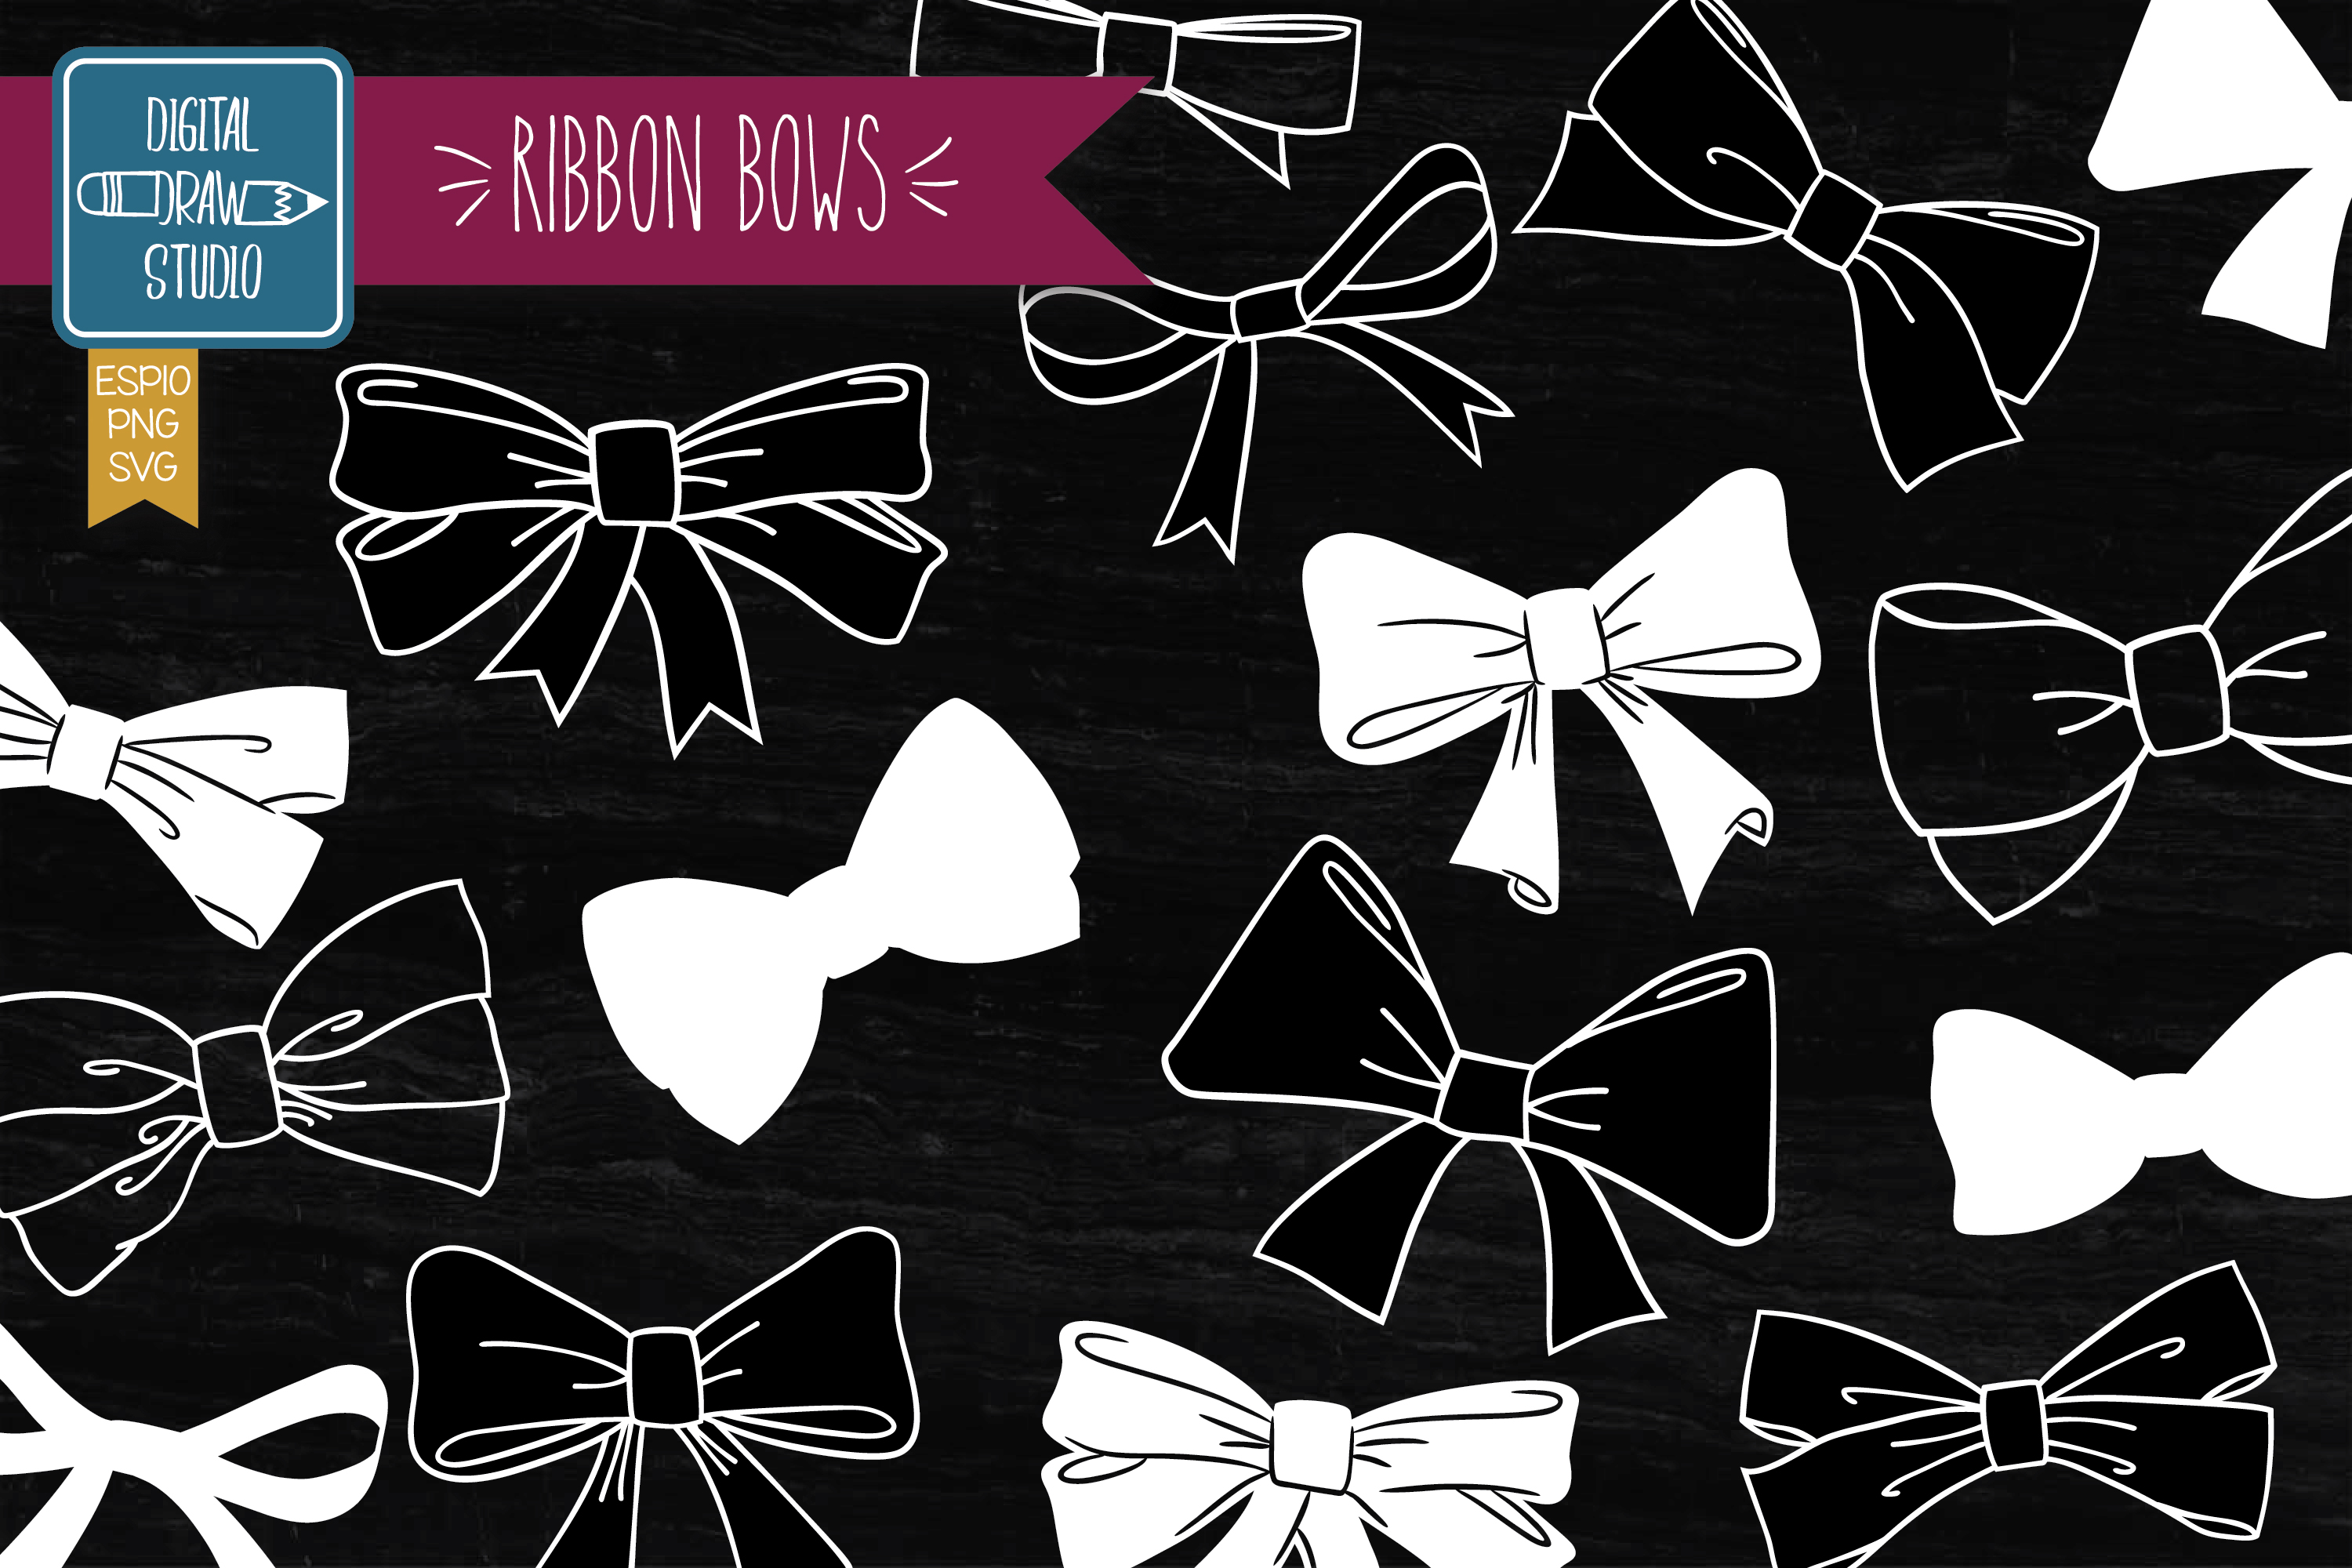 Download Free Hand Drawn Ribbon Bow Illustration White Graphic By for Cricut Explore, Silhouette and other cutting machines.